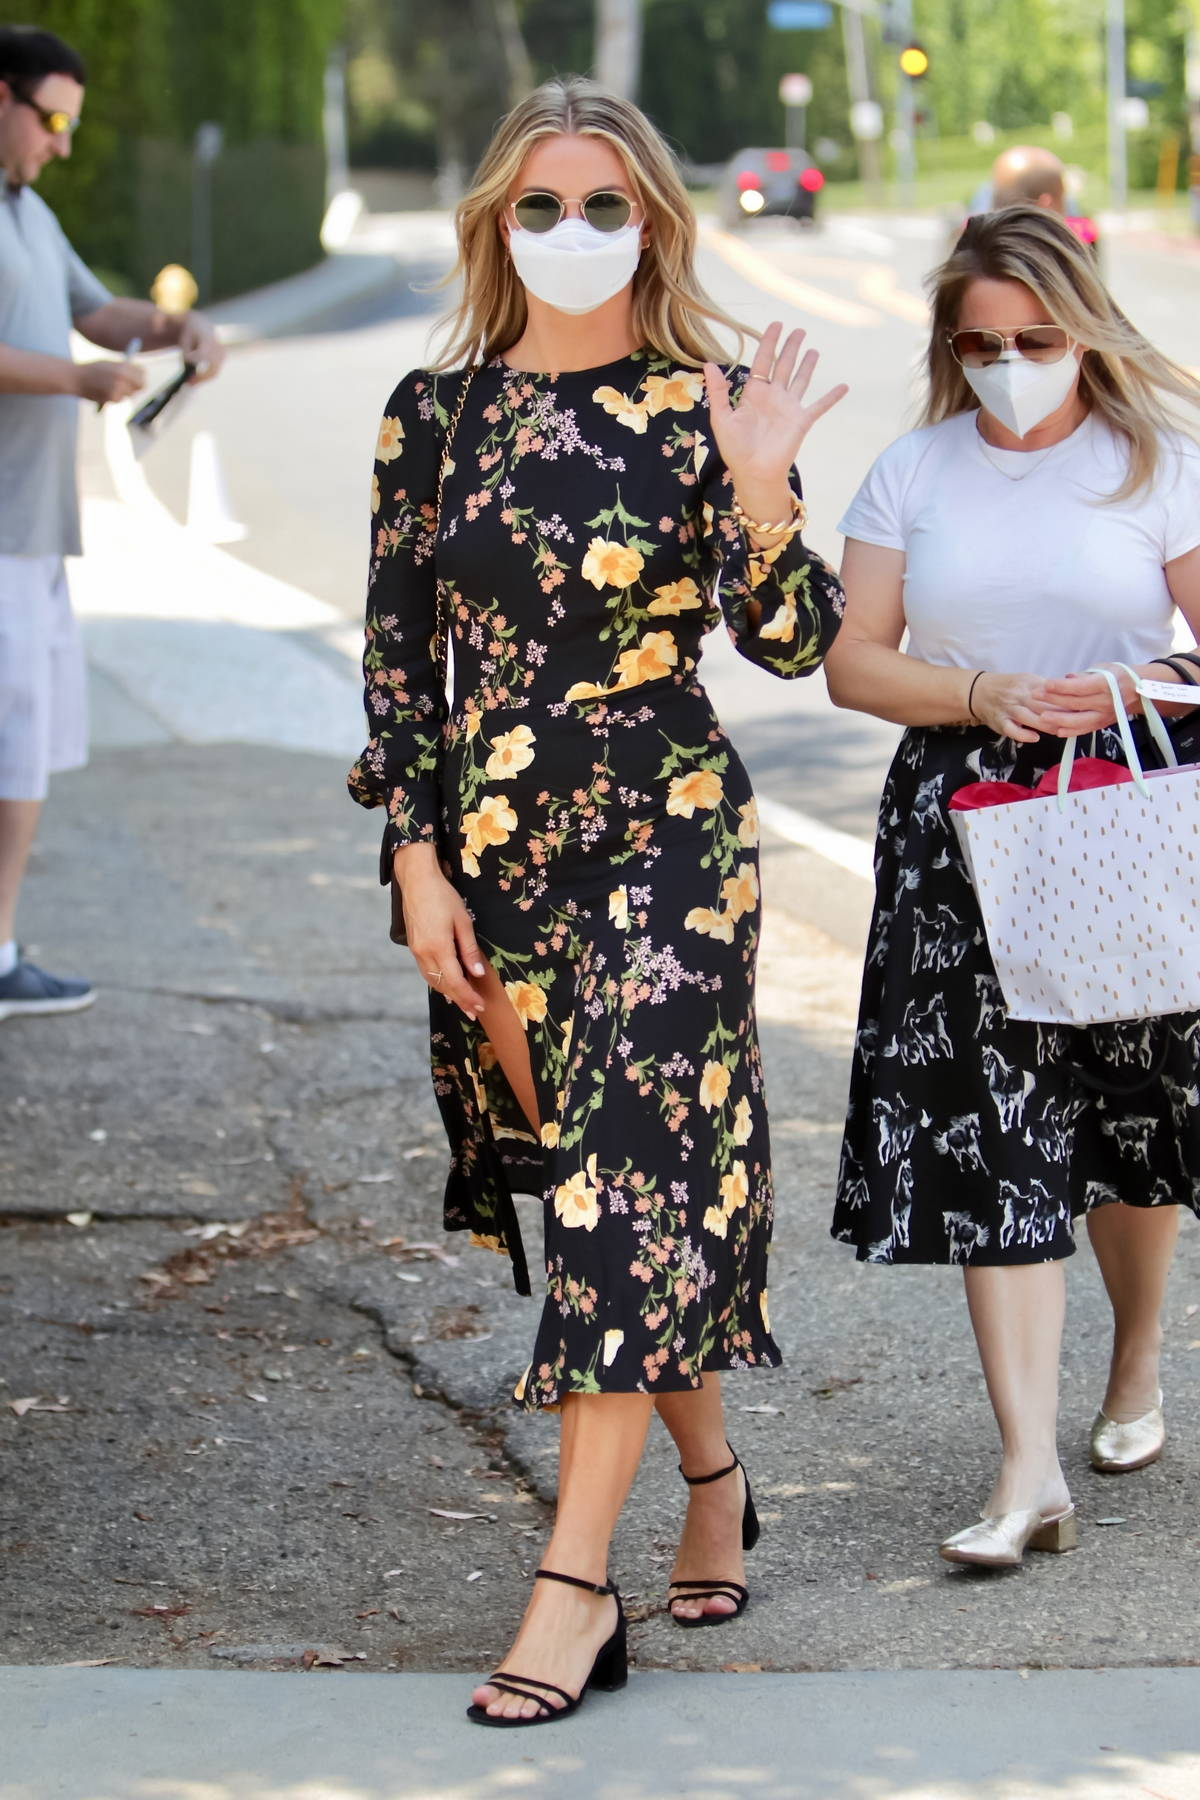 Julianne Hough attends the Day Of Indulgence event in Brentwood, California